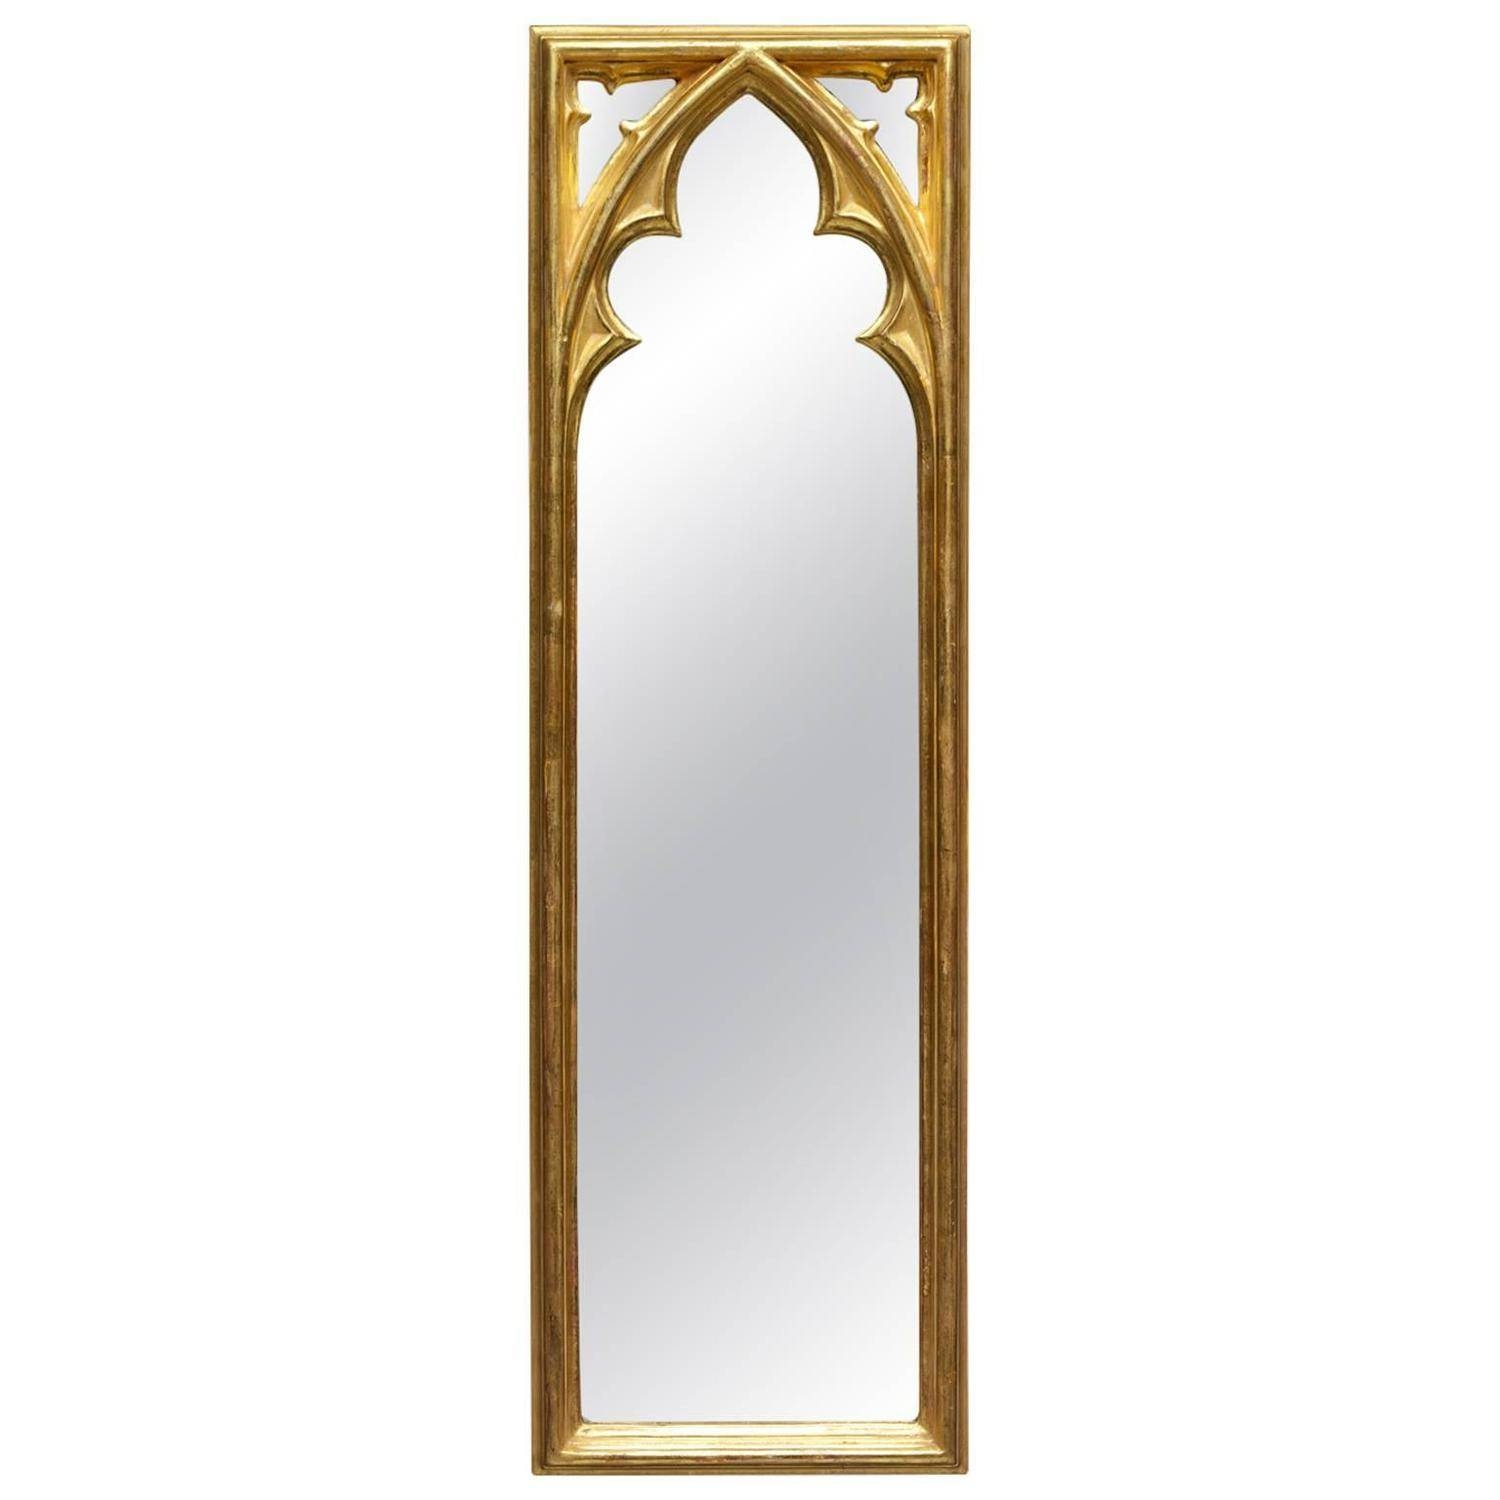 Gothic Revival Burl Wood Arched Wall Mirror At 1Stdibs intended for Gothic Wall Mirrors (Image 16 of 25)